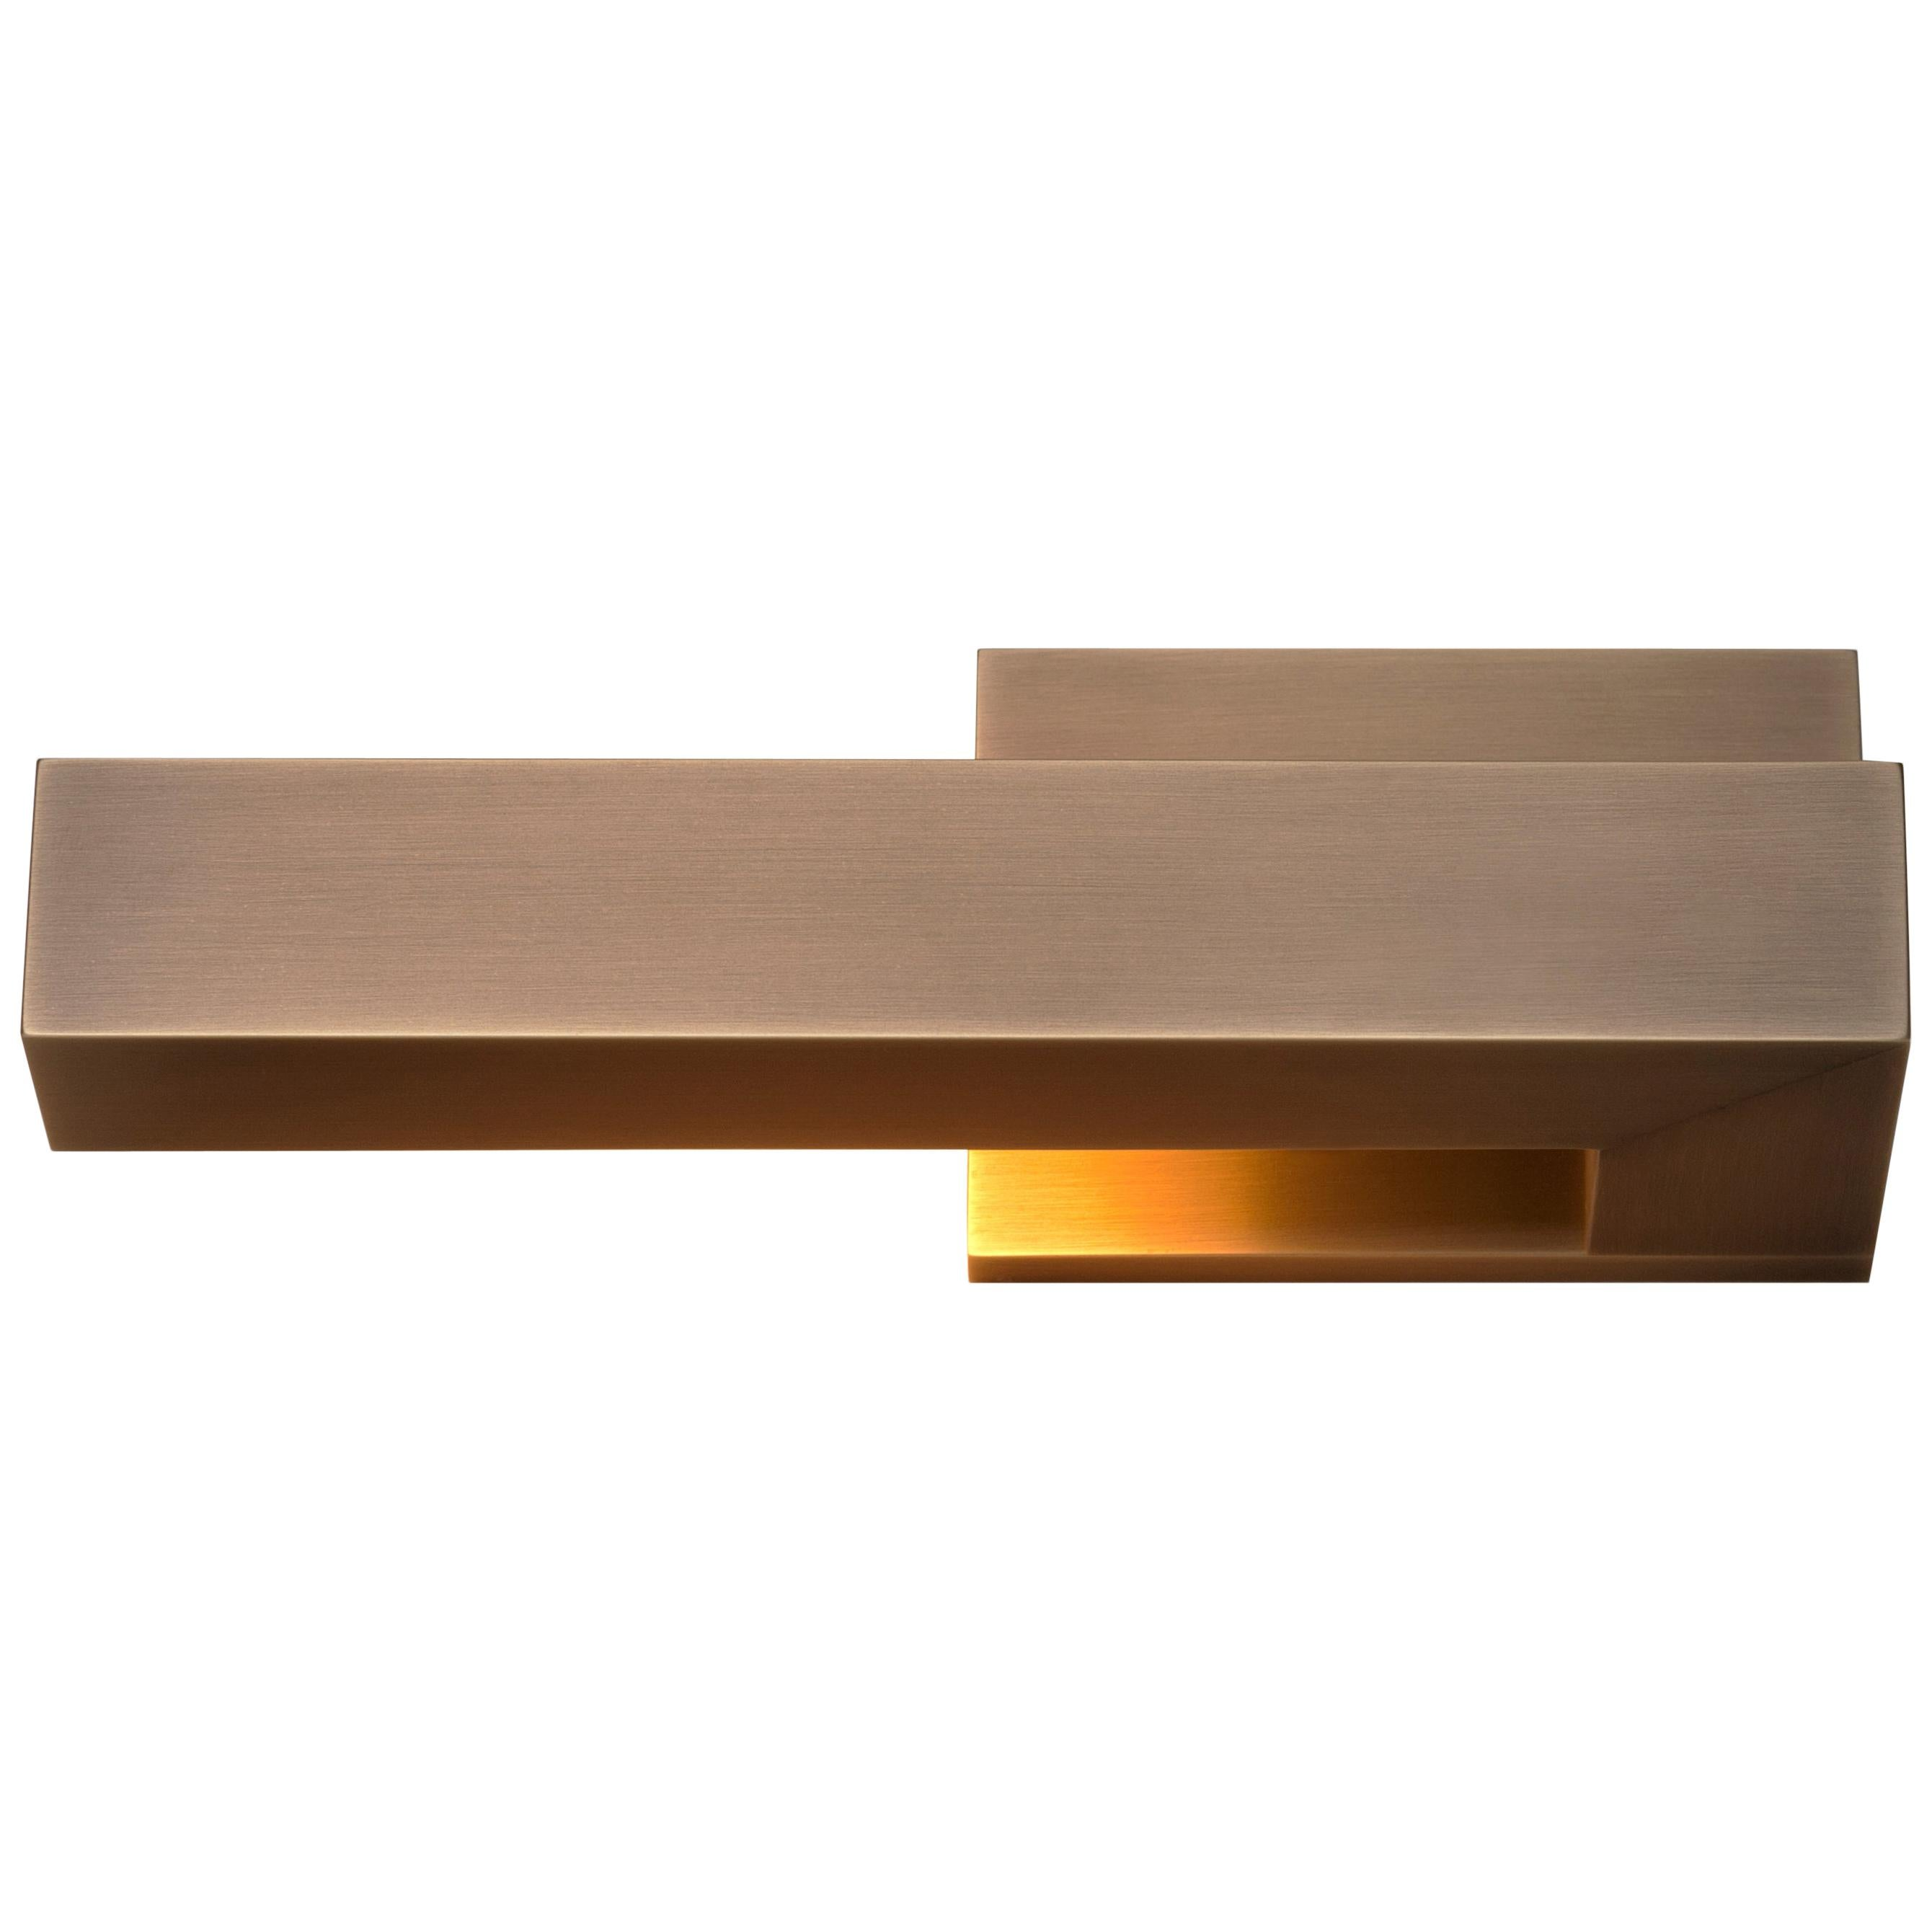 HOLLY HUNT Left Facing Bar Wall Sconce in Golden Bronze Patinated Finish